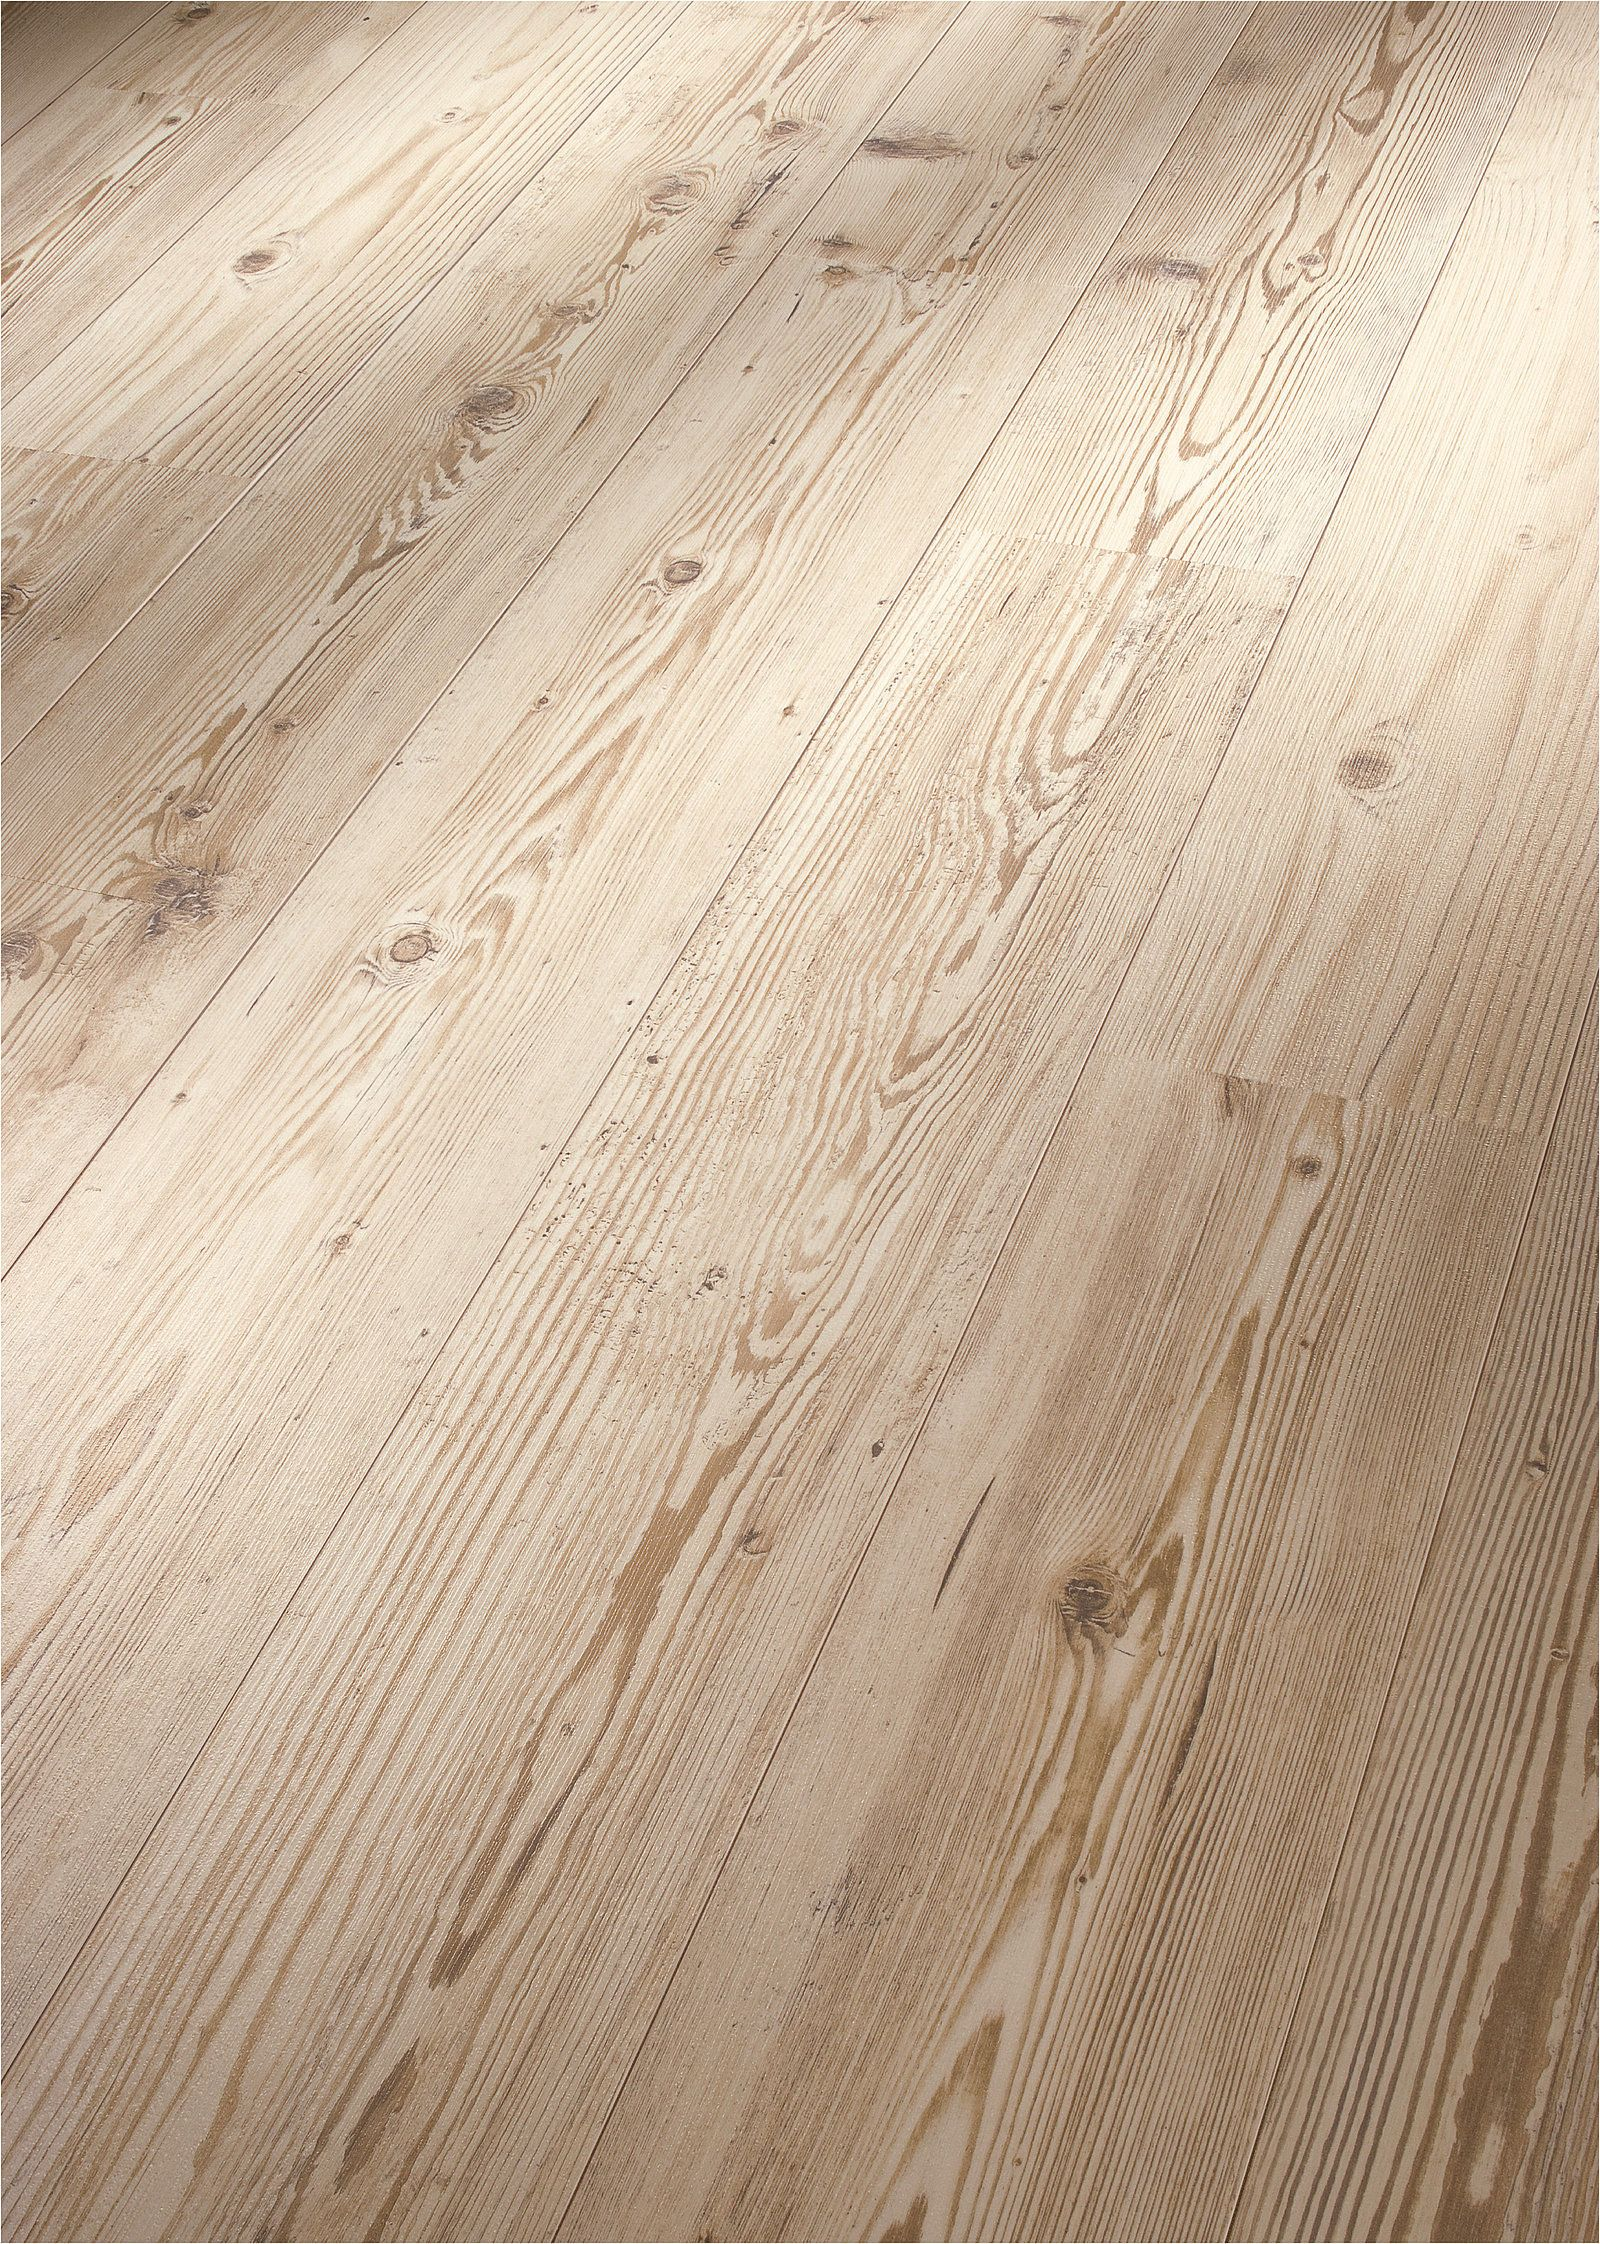 Laminate Ld 200 S White Spruce 6025 Wood Effect Wm